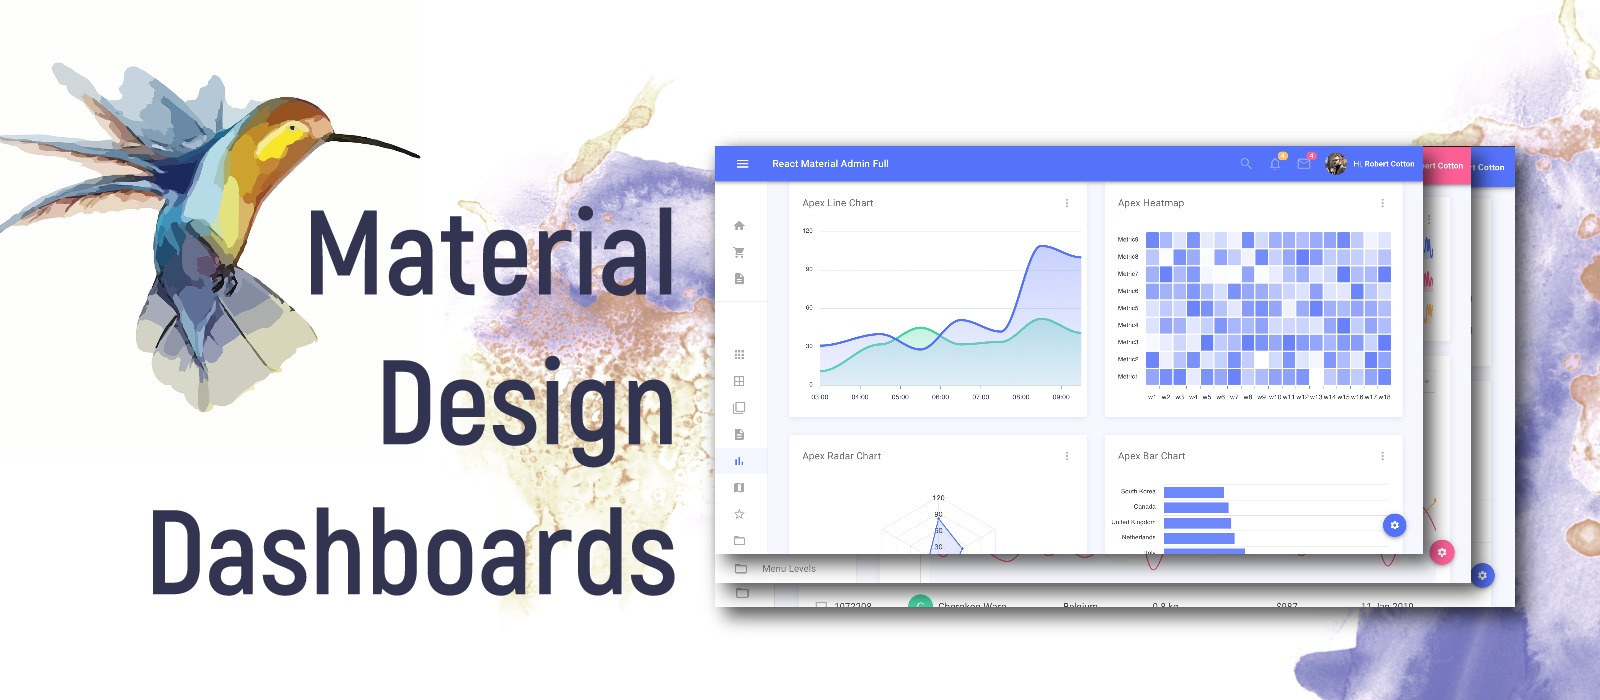 Top 6 Material Design Dashboards